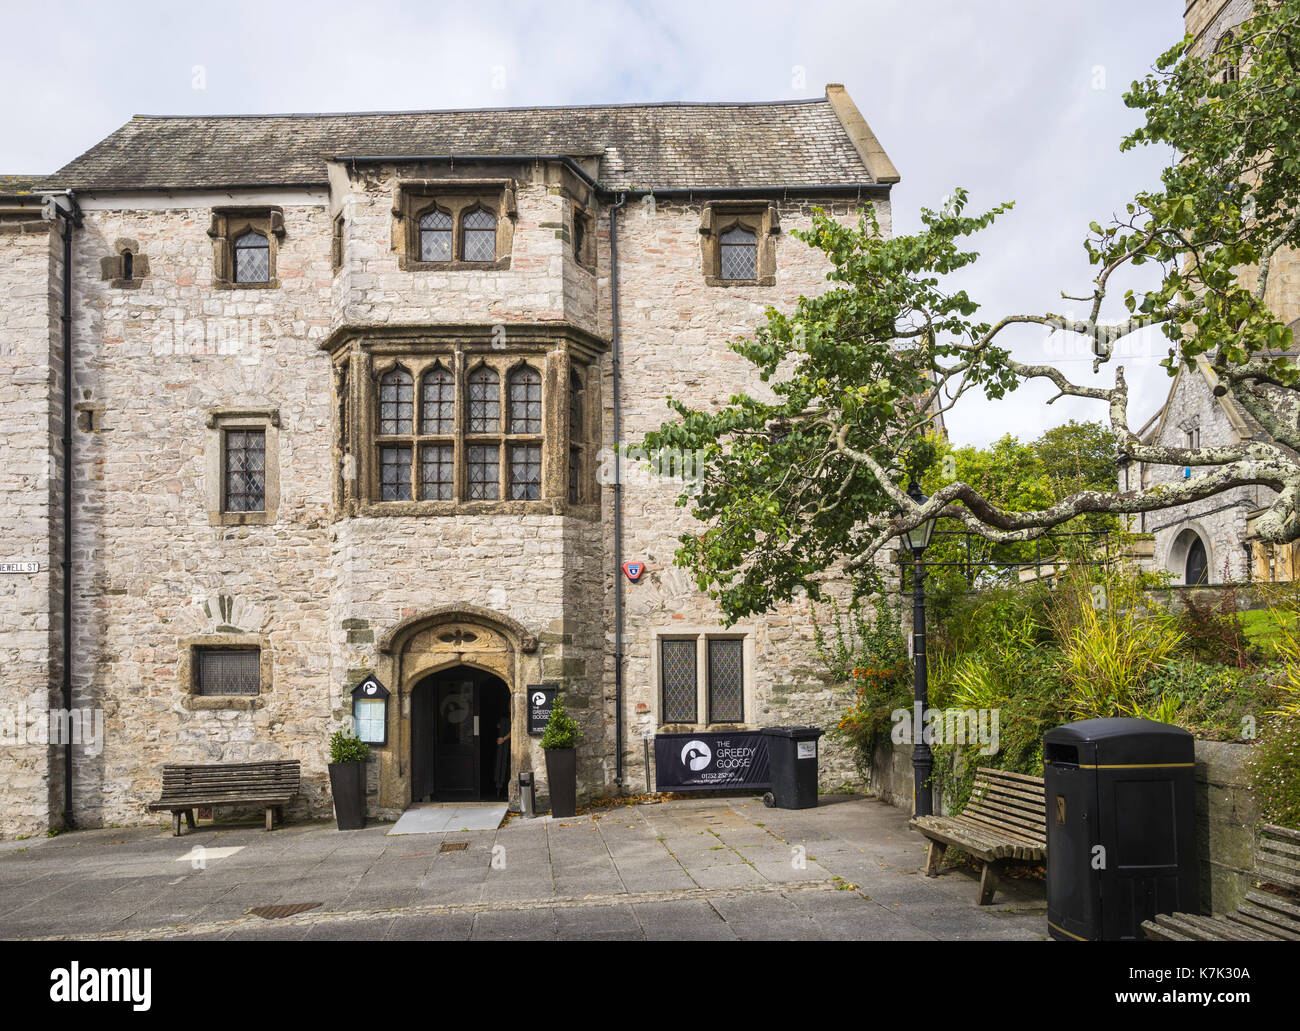 Prysten House is a 15th century merchant's house in Finewell Street, Plymouth, UK.  It houses a restaurant, 'the Greedy Goose'. - Stock Image